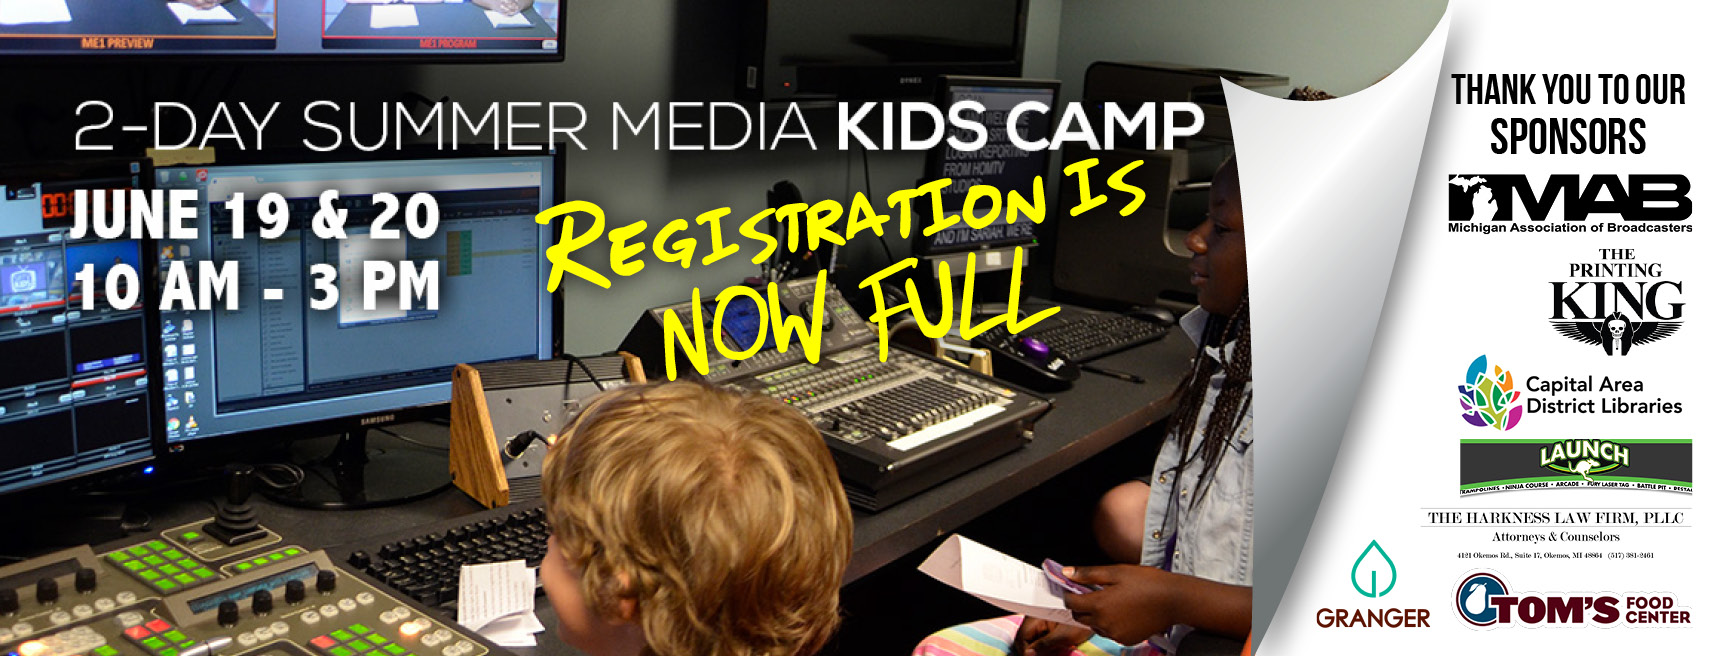 HOMTV Offers Kids an Opportunity to Explore Different Aspects of Television